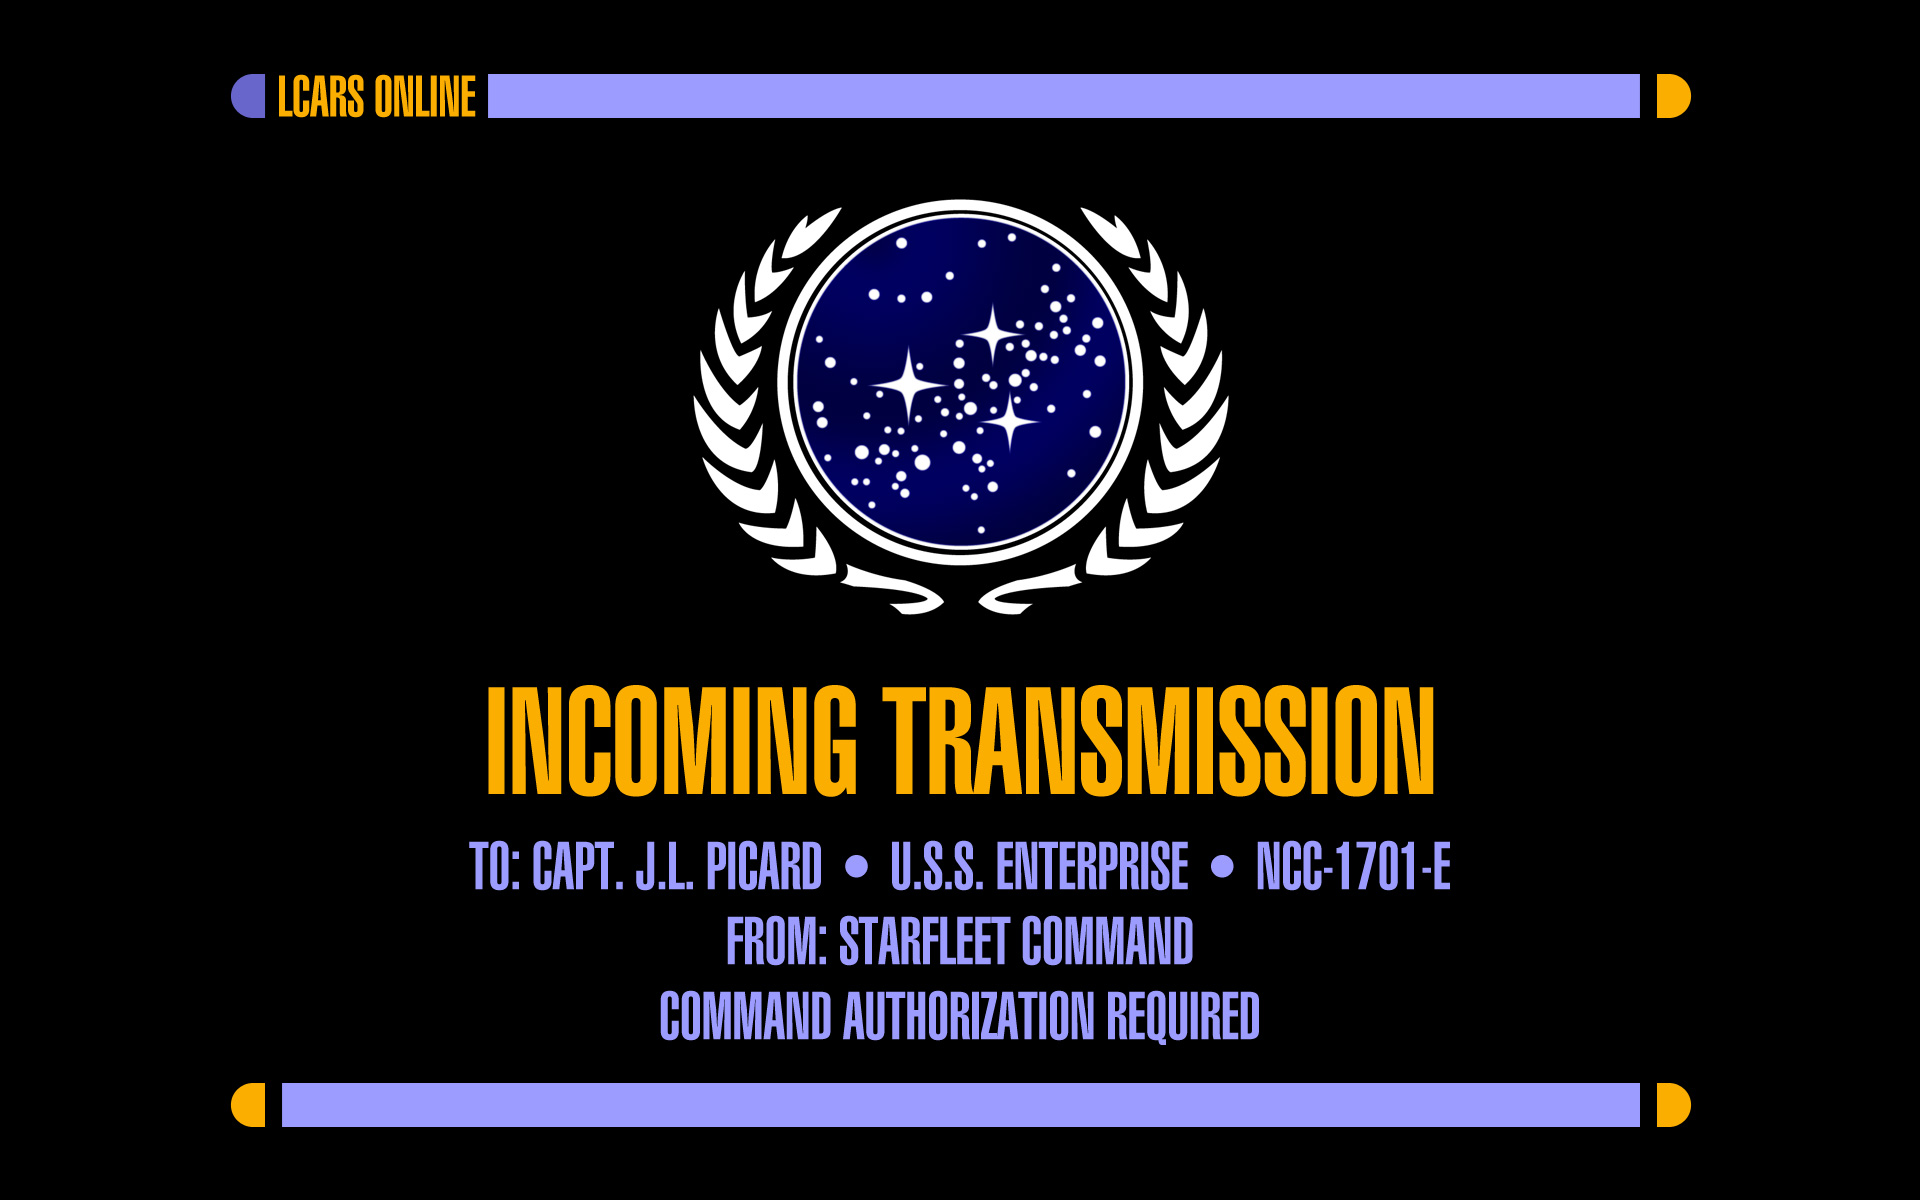 lcars incoming transmission by futurephonic on deviantart